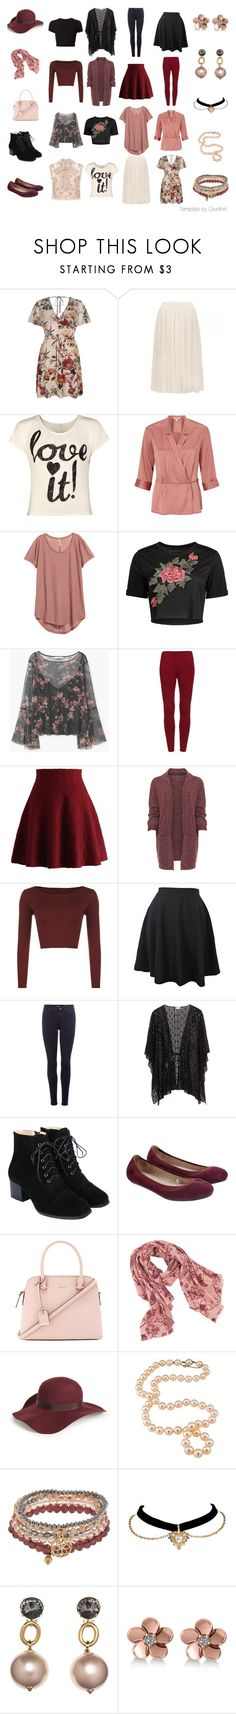 Floral four by four by gwethril on Polyvore featuring мода, River Island, WearAll, Miss Selfridge, MANGO, Chicwish, 7 For All Mankind, Accessorize, Kate Spade and Decree